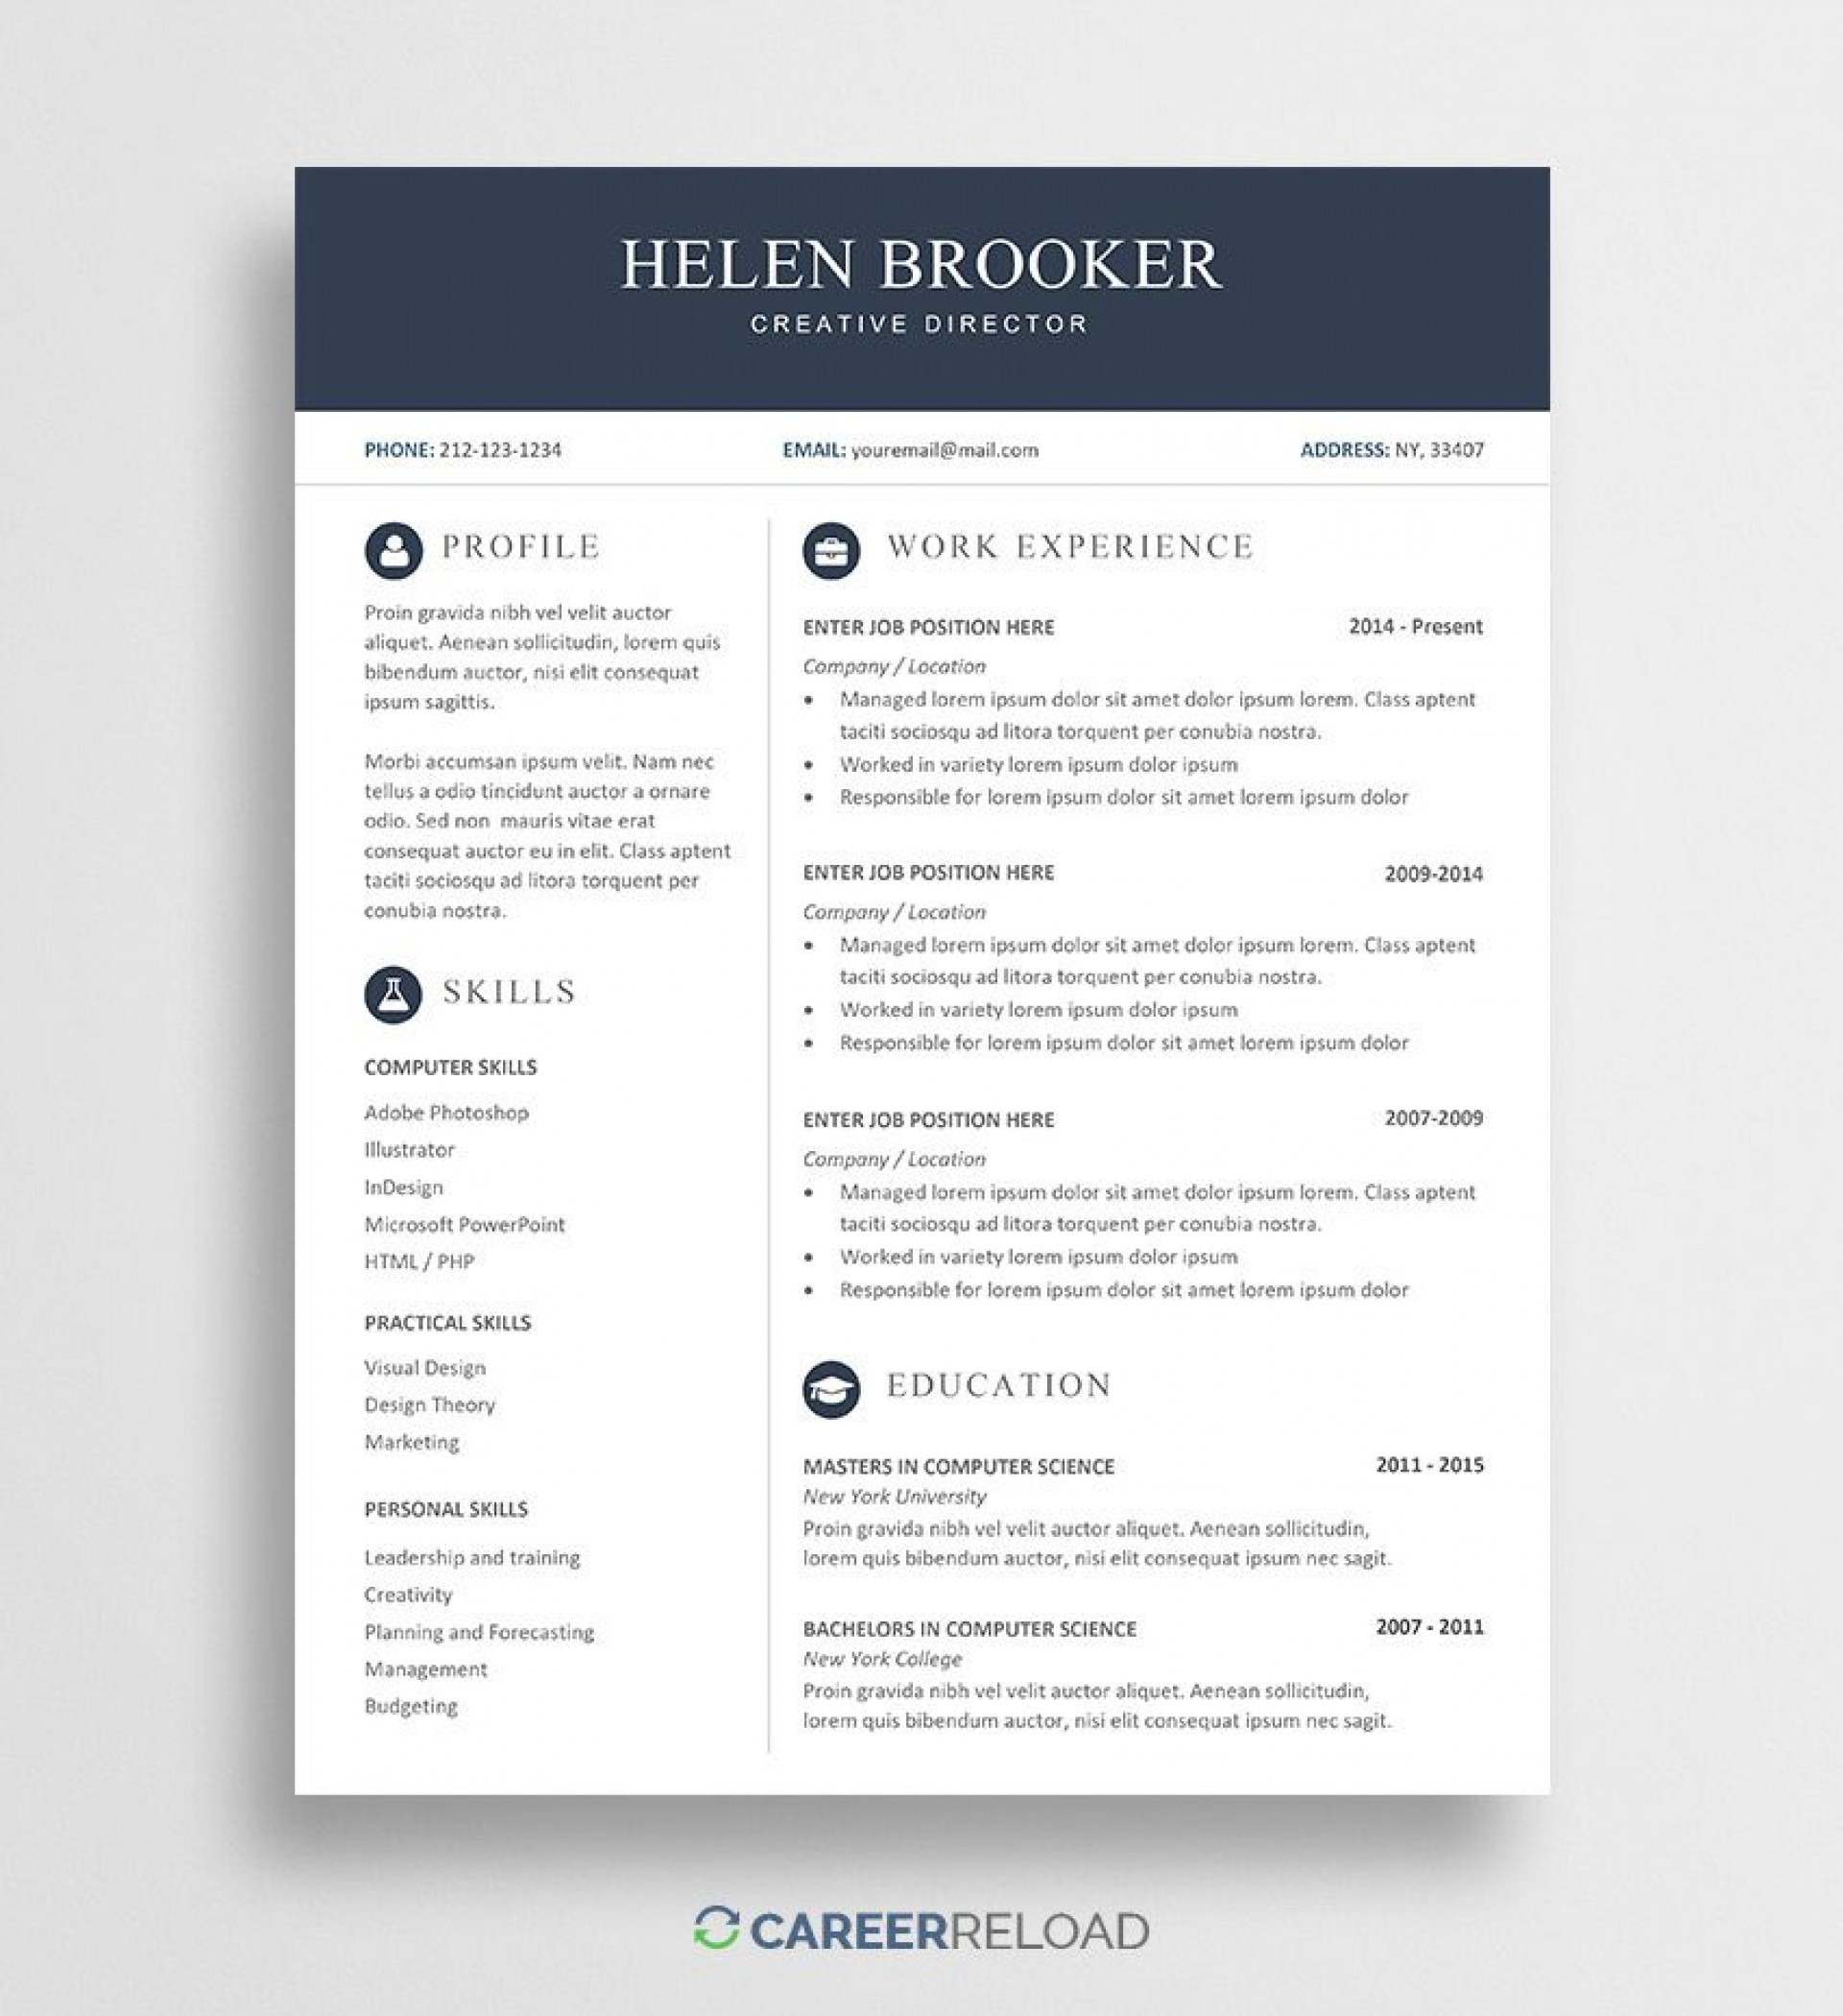 006 Fascinating Resume Template Free Word Photo  Download Document 2020 For Fresher1920